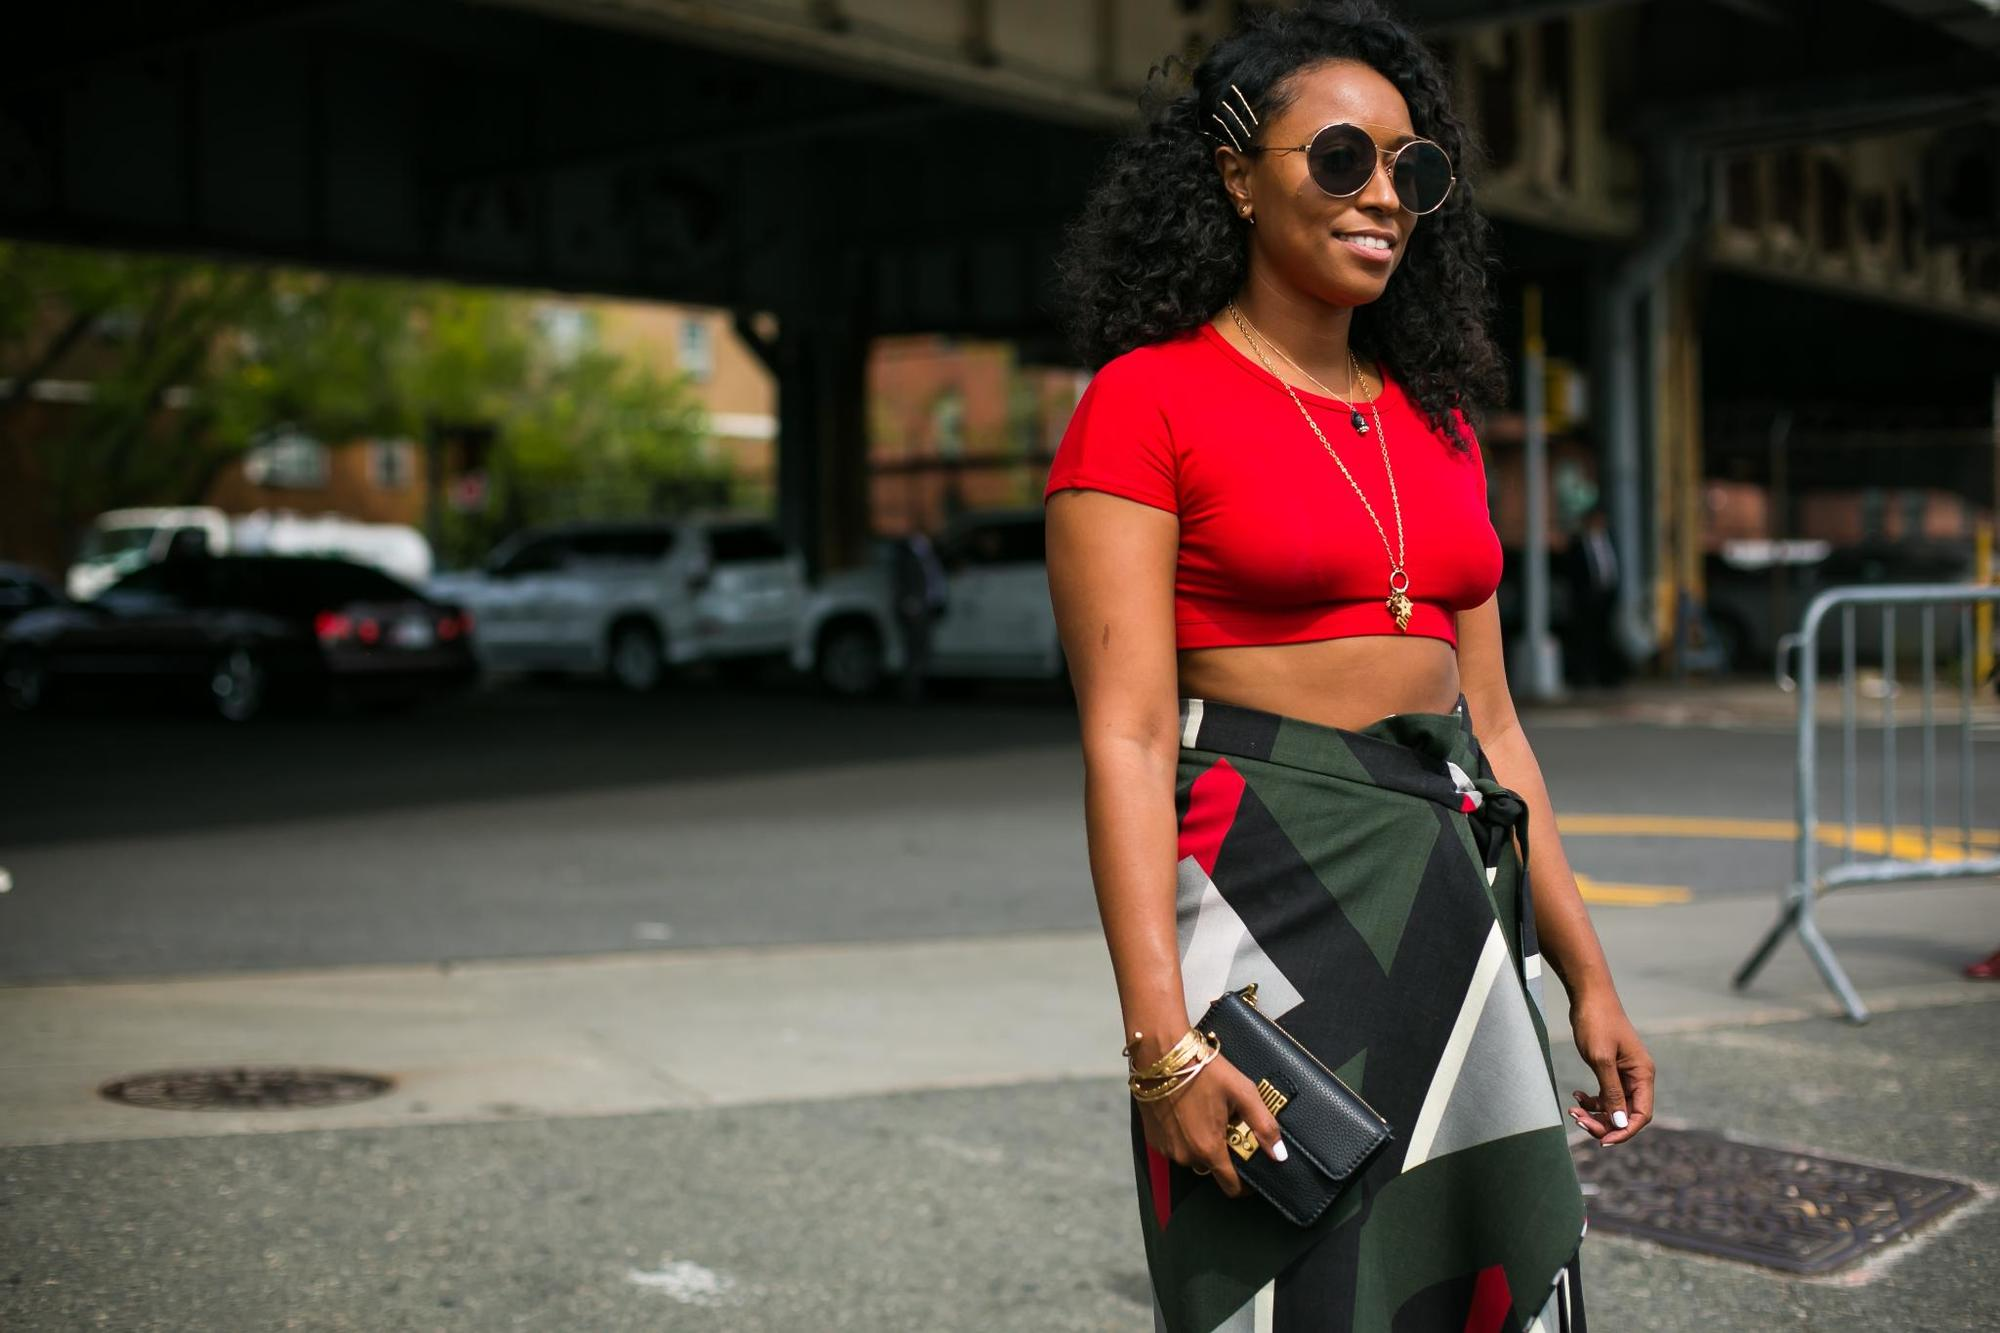 street style hair trend forecast: pinned up curls